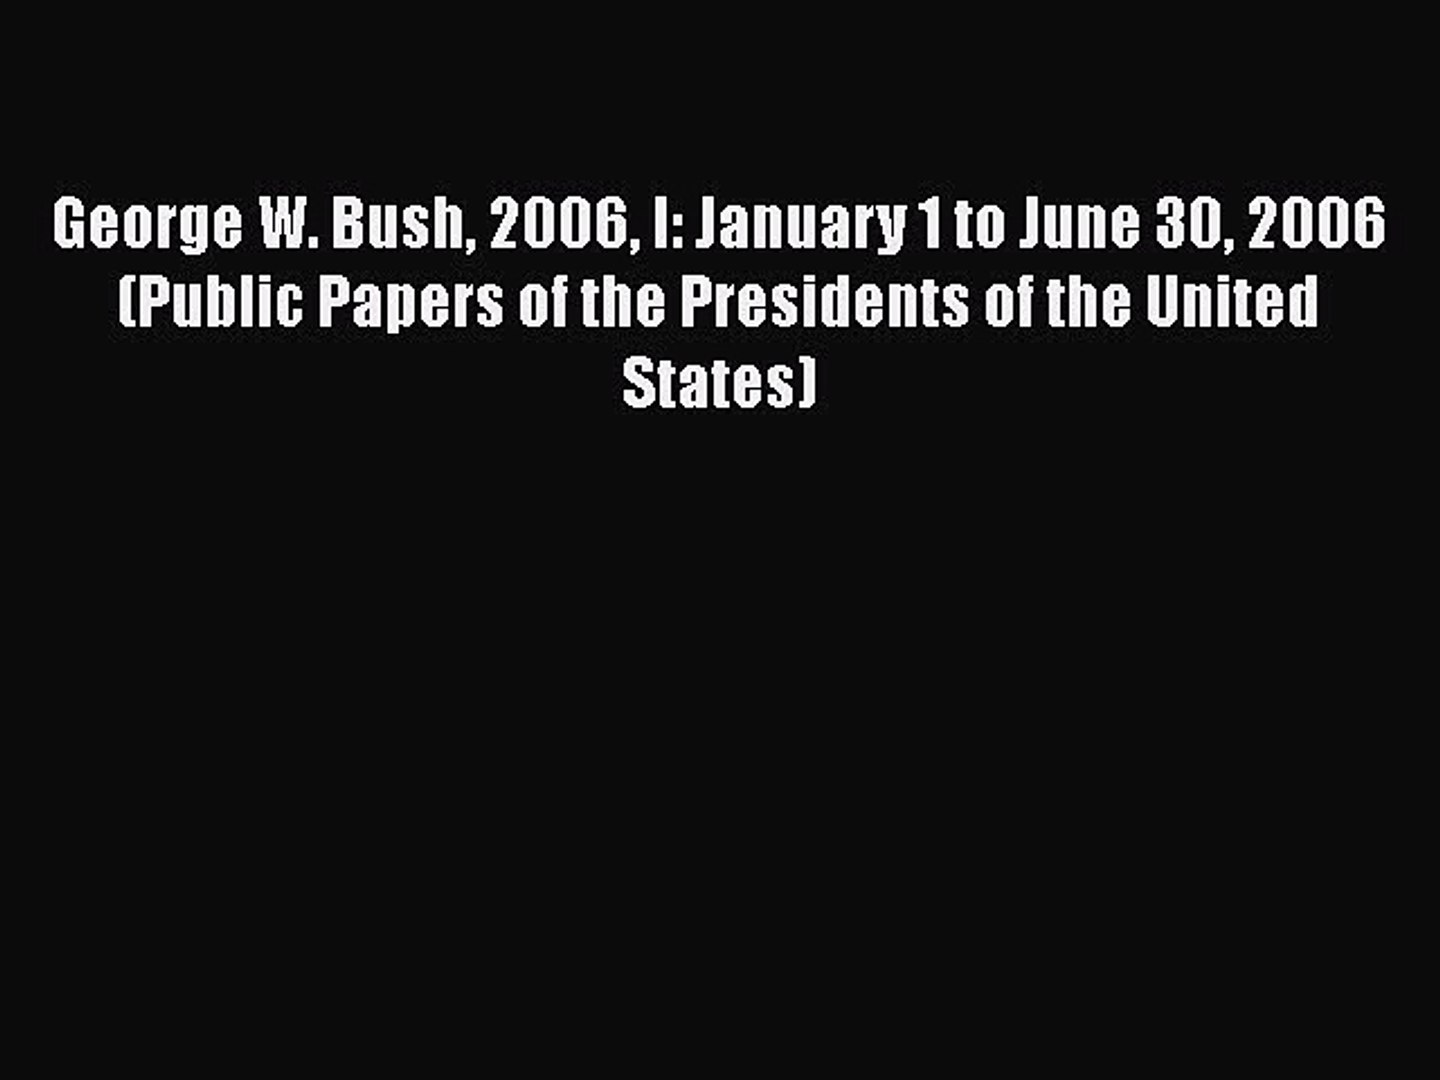 Read Book George W. Bush 2006 I: January 1 to June 30 2006 (Public Papers of the Presidents